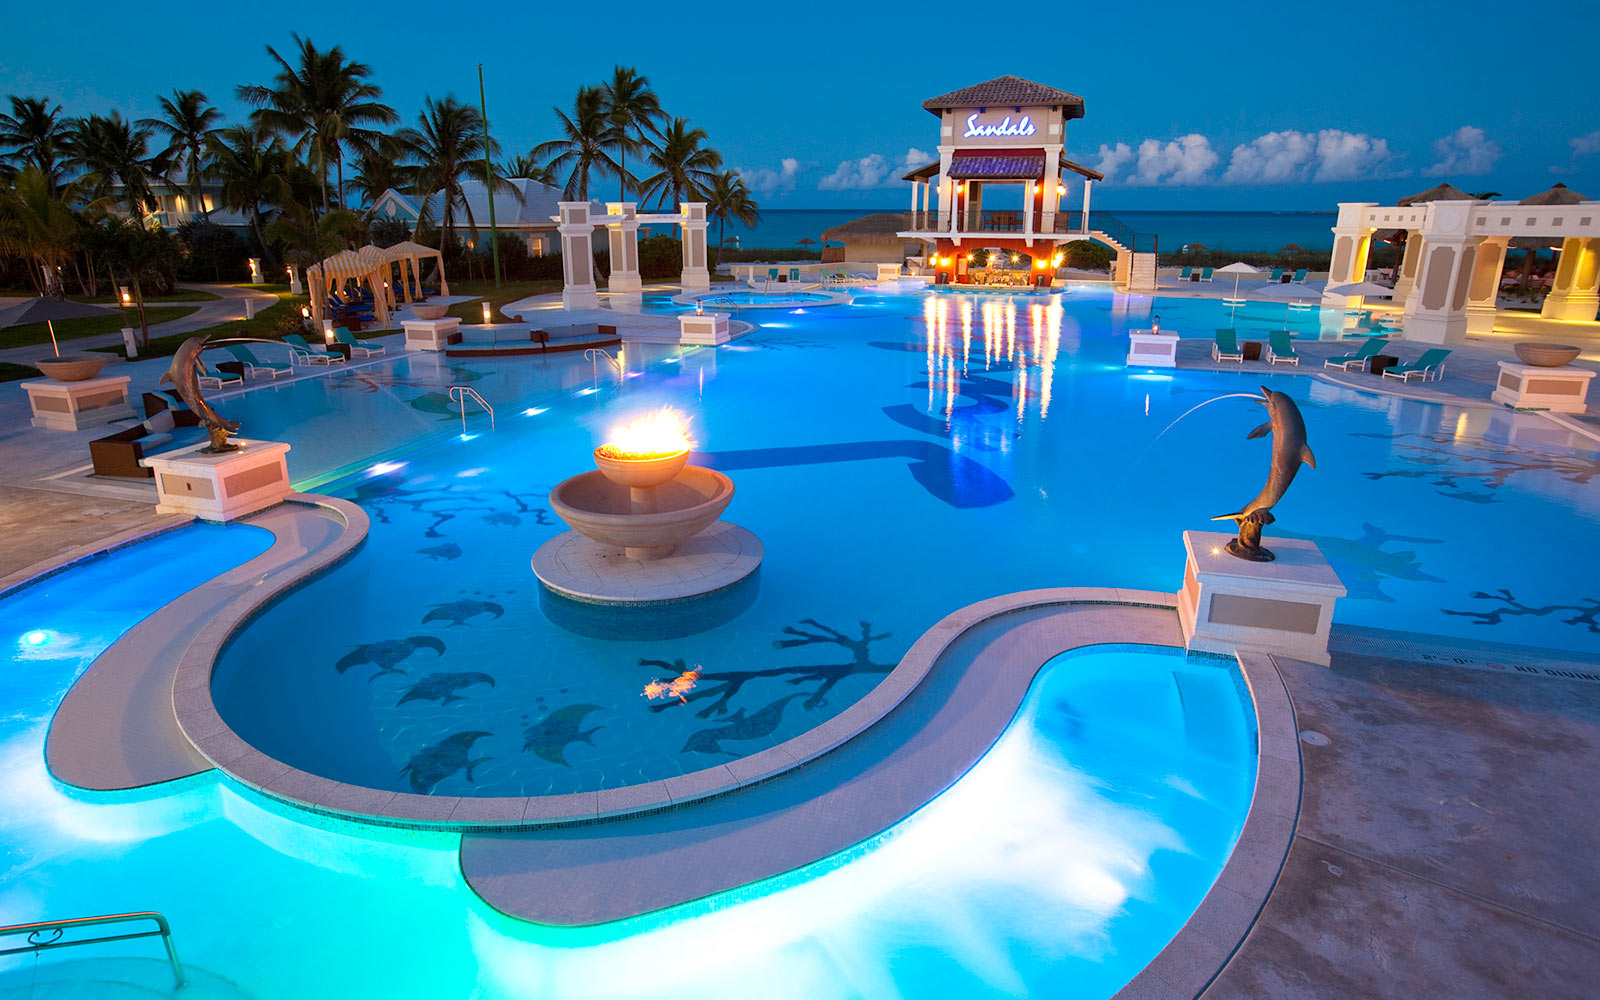 Sandals Emerald Bay Exumas, Bahamas